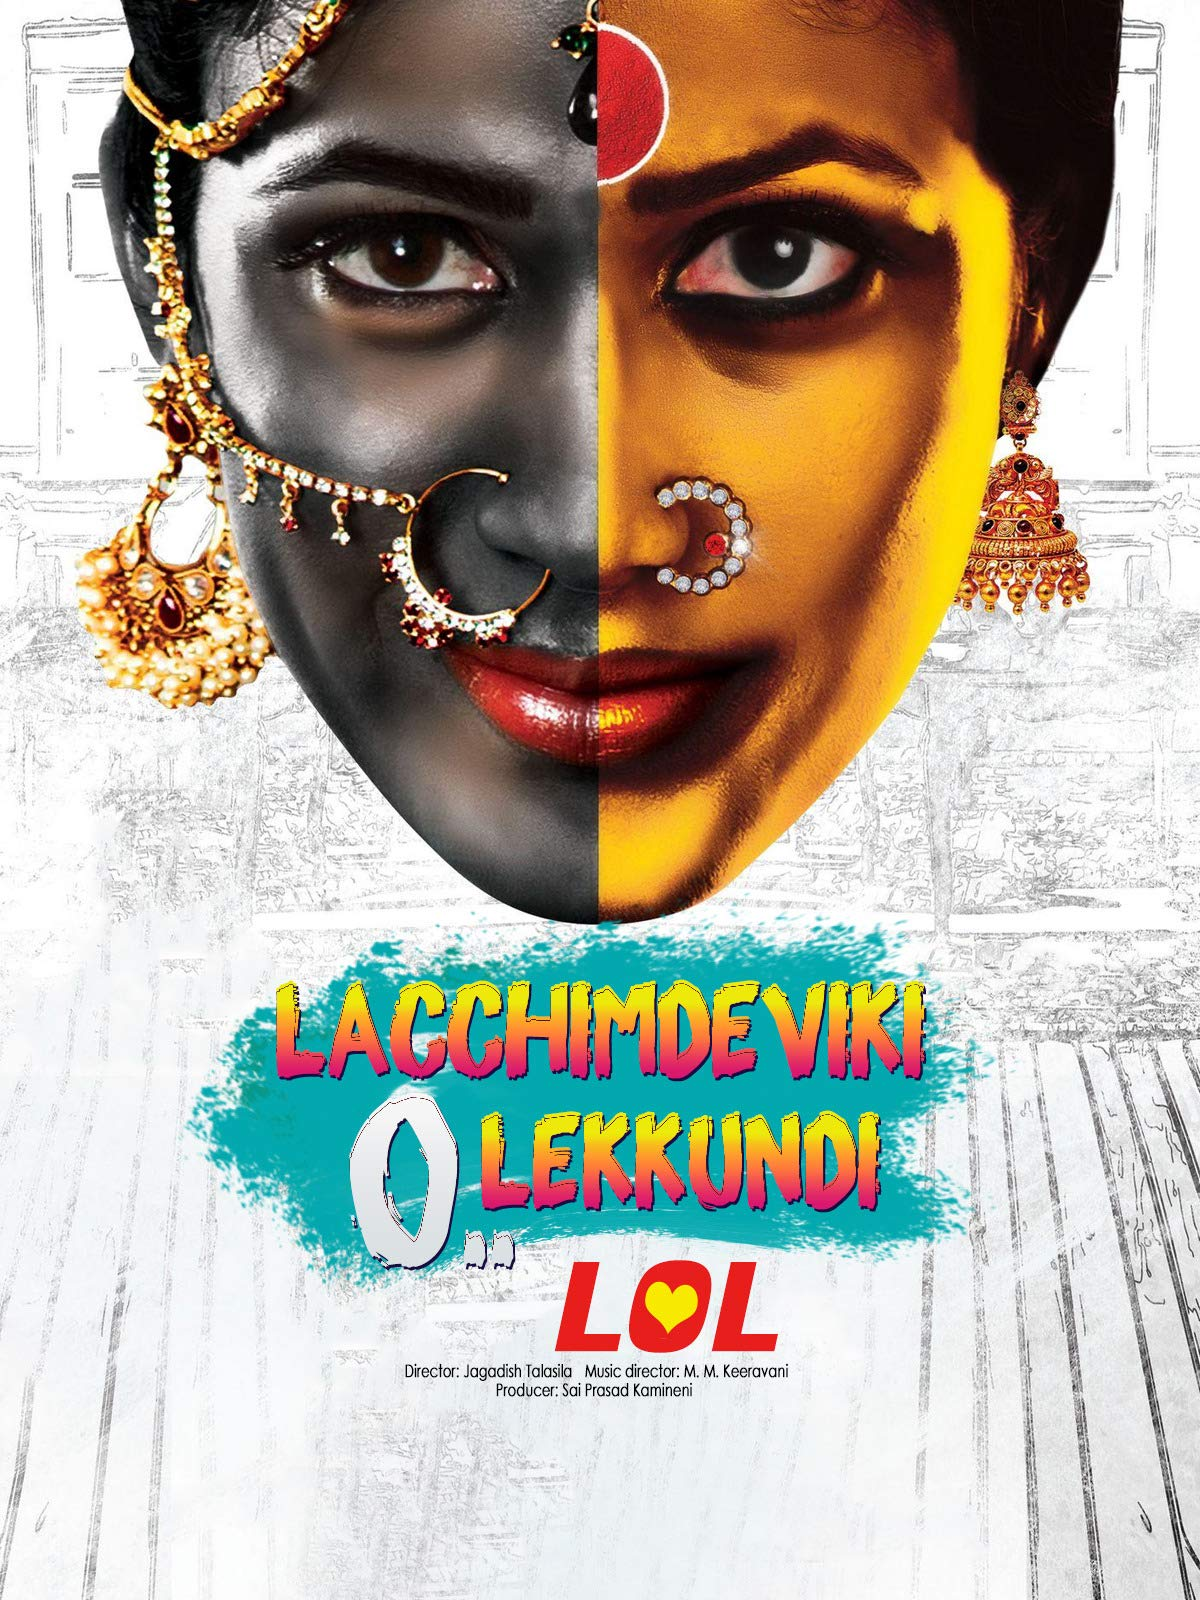 Lacchimdeviki O Lekkundi on Amazon Prime Instant Video UK